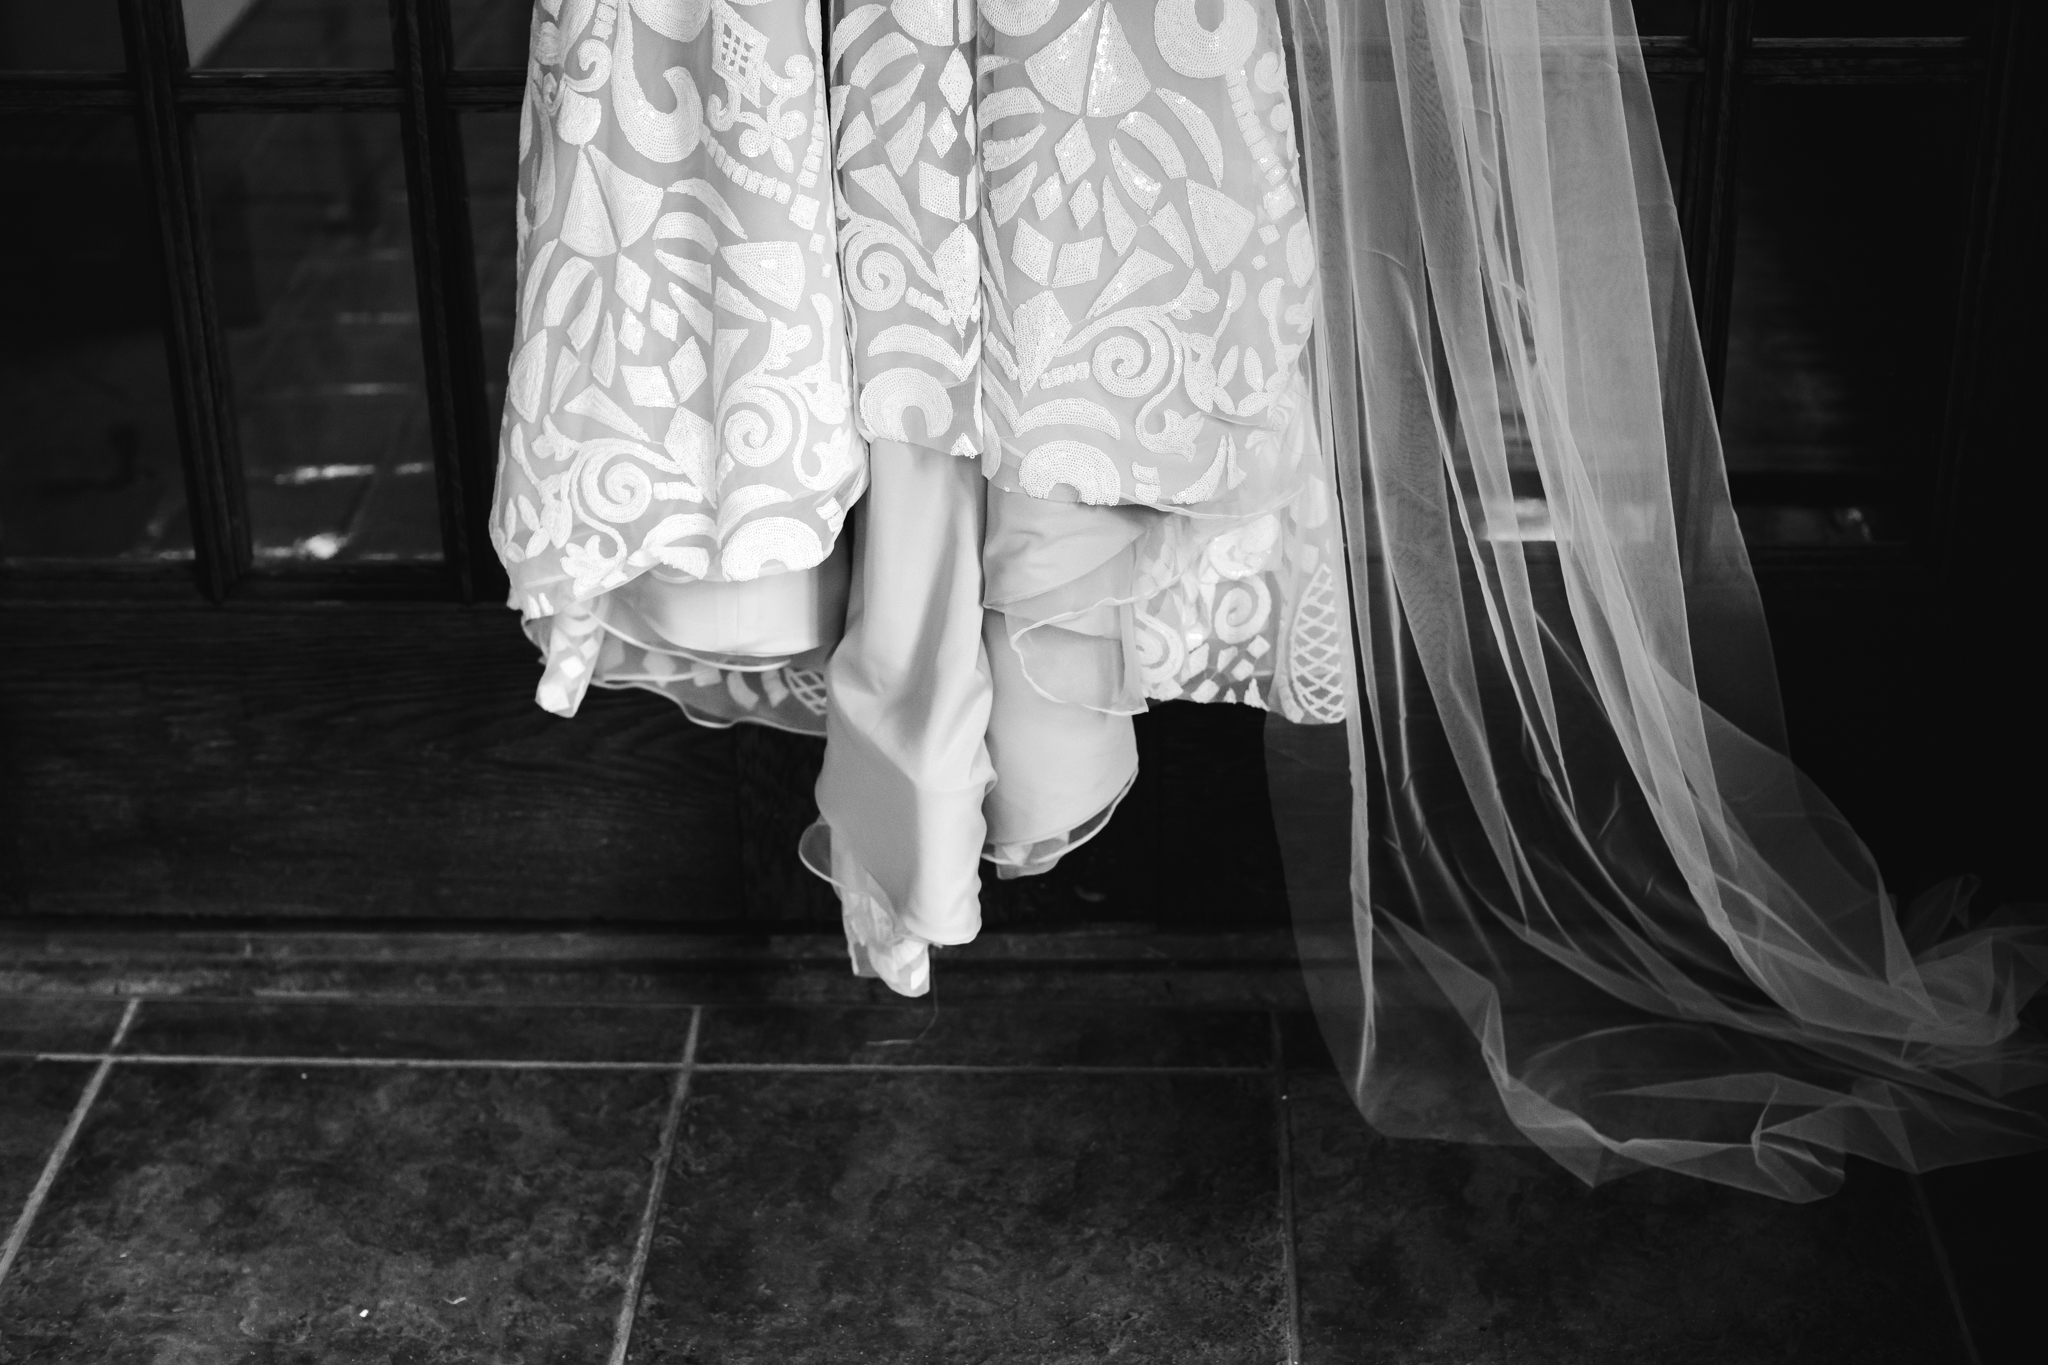 chattanooga-wedding-photographers-thewarmtharoundyou-waterhouse-pavilion-patten-chapel-wedding-sam-dusty (10 of 269).jpg